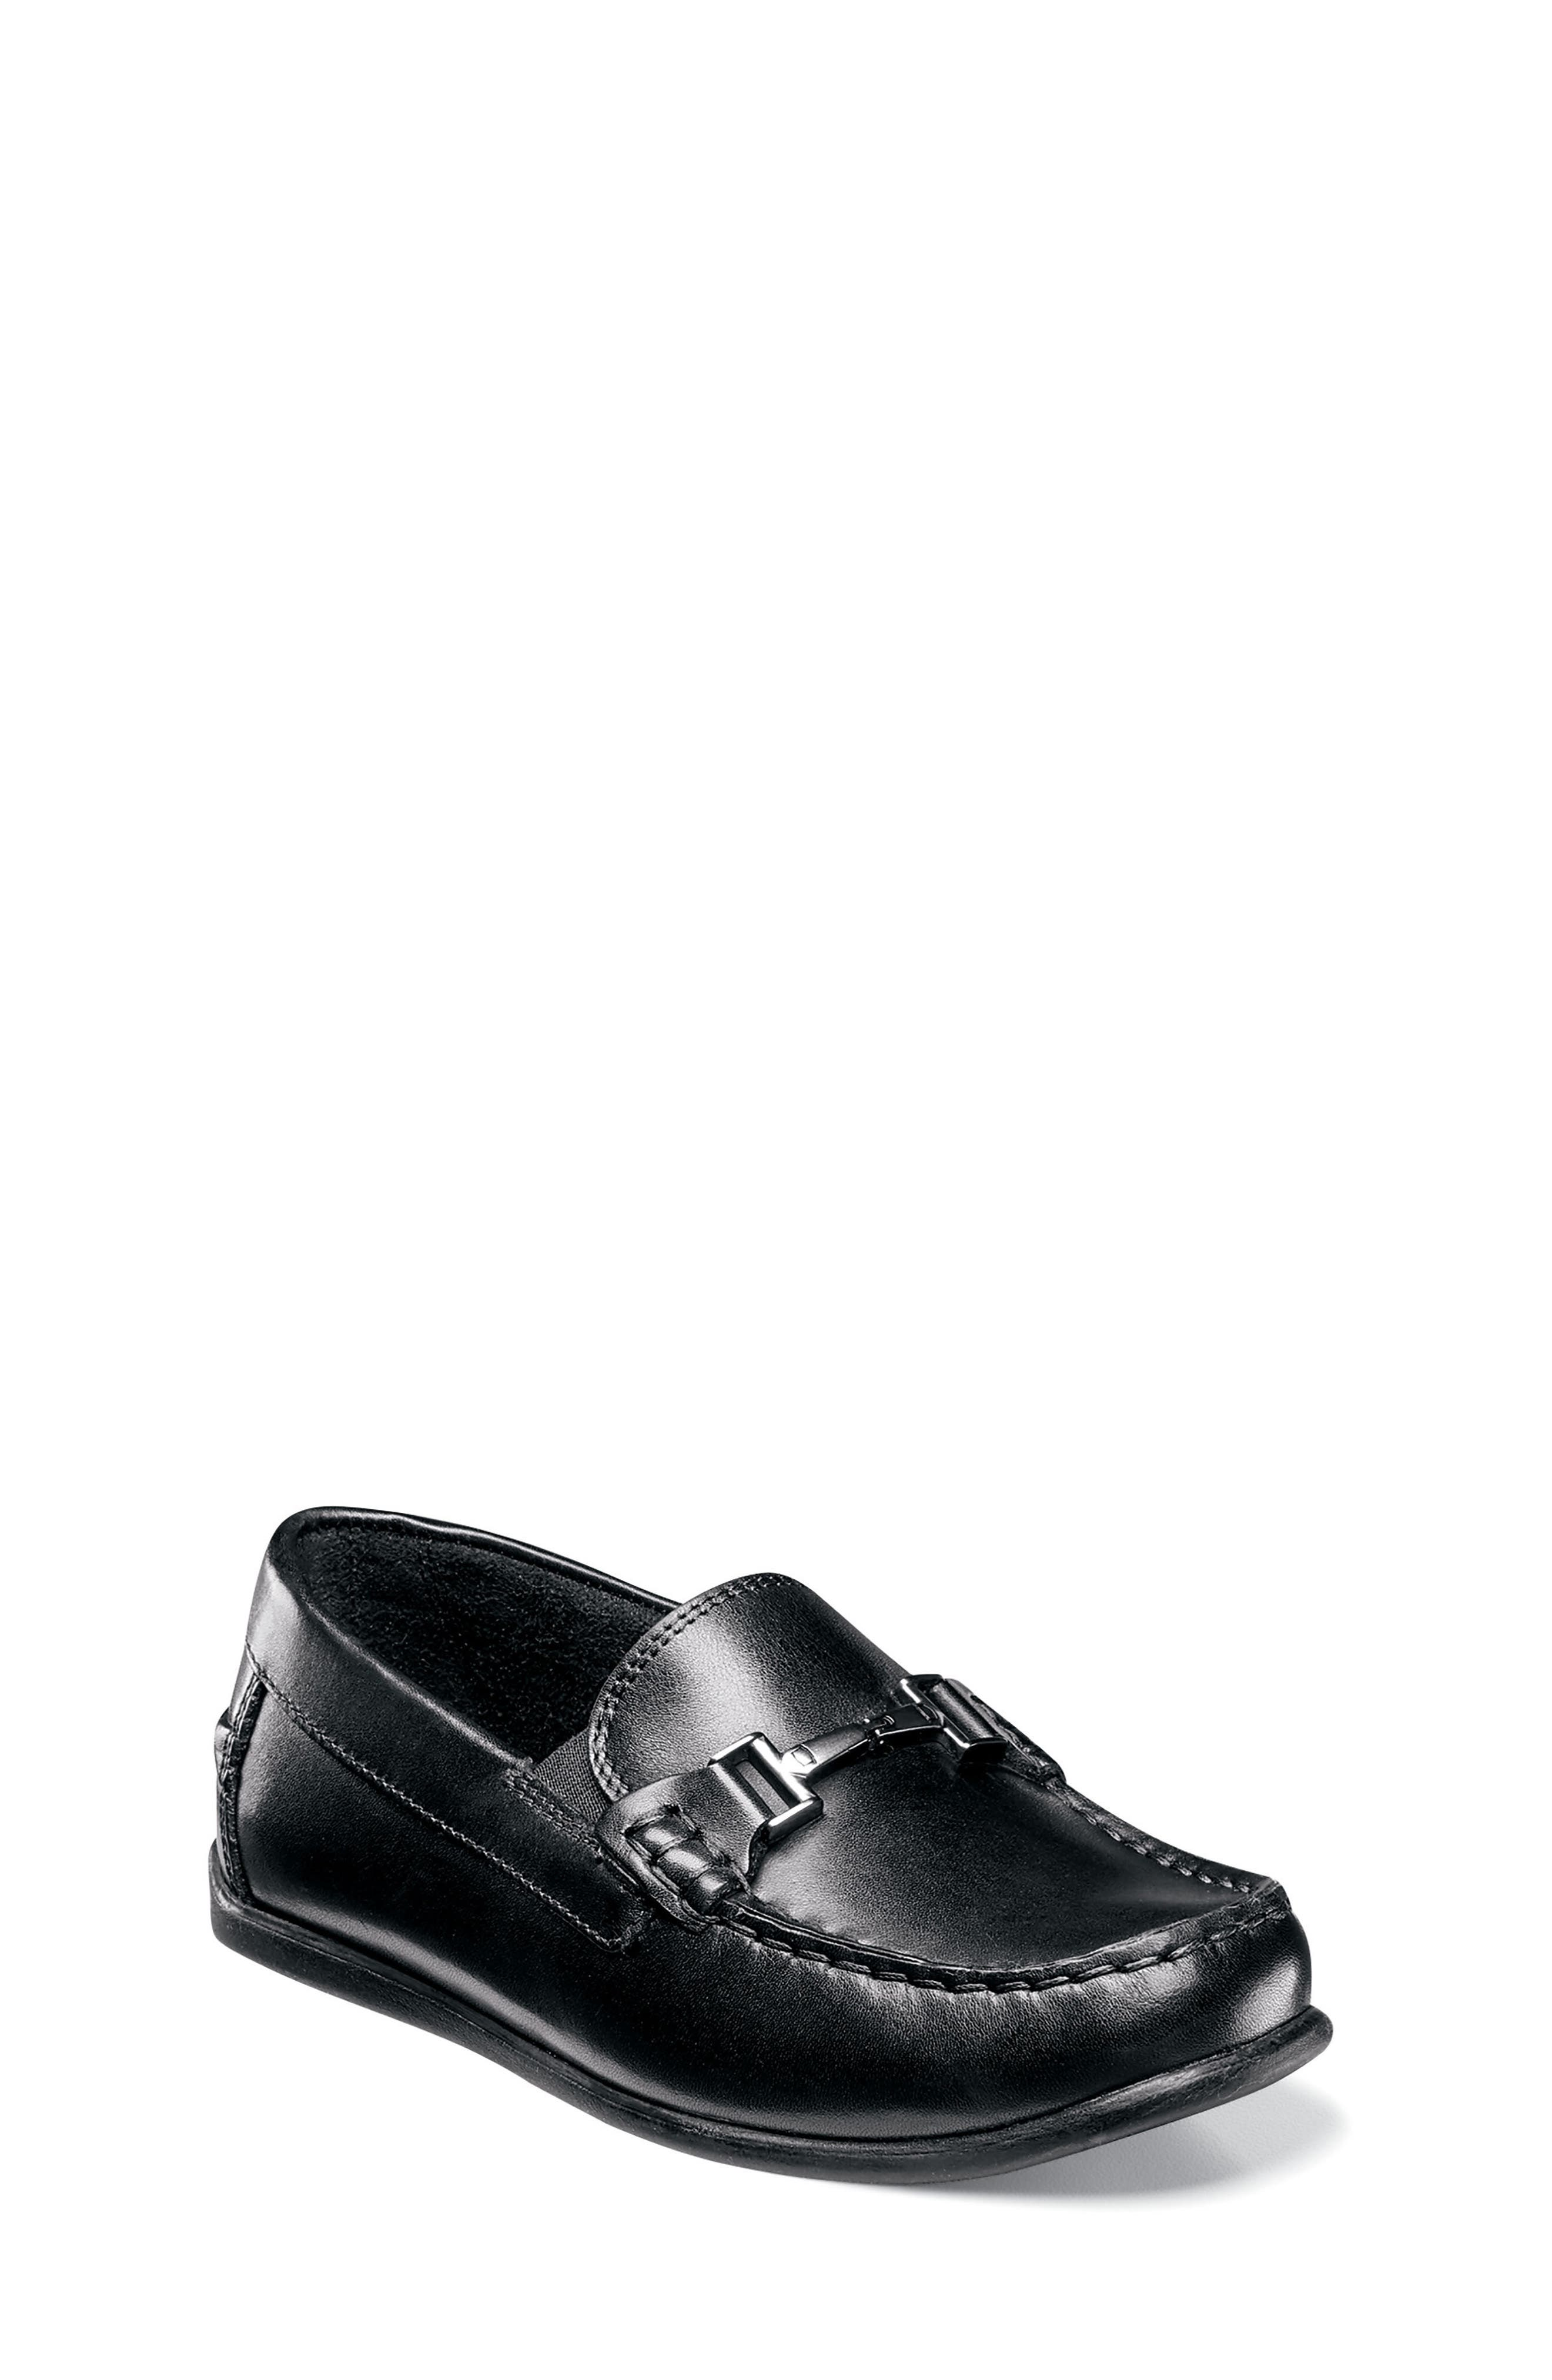 Alternate Image 1 Selected - Florsheim Jasper Bit Jr Loafer (Toddler, Little Kid & Big Kid)